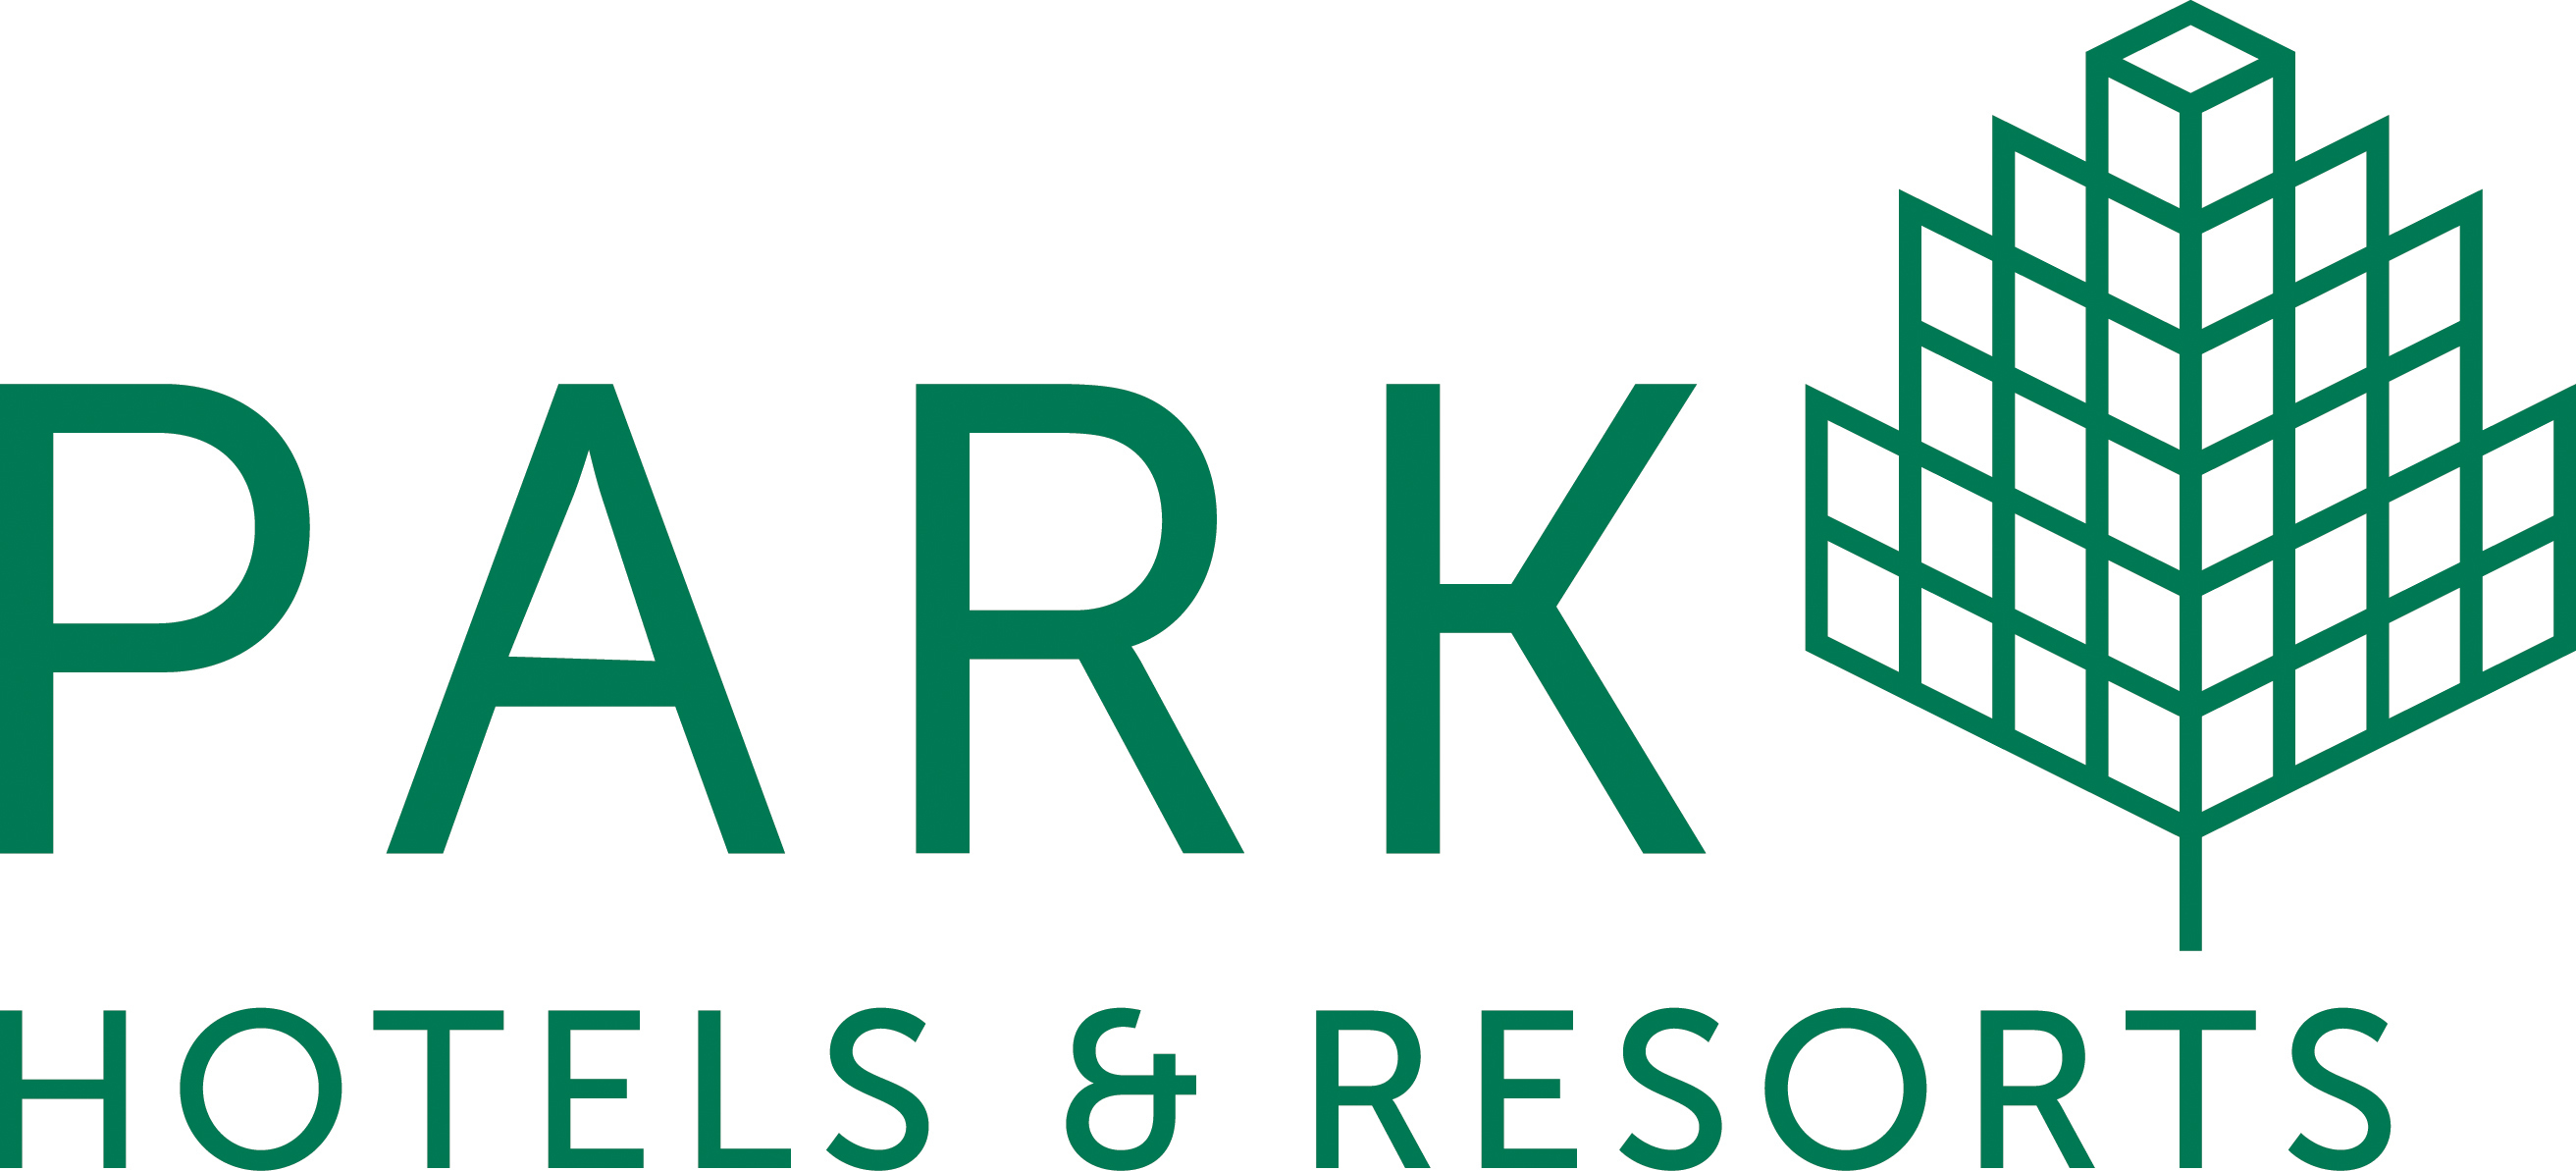 Park Hotels & Resorts, Inc. Company Logo